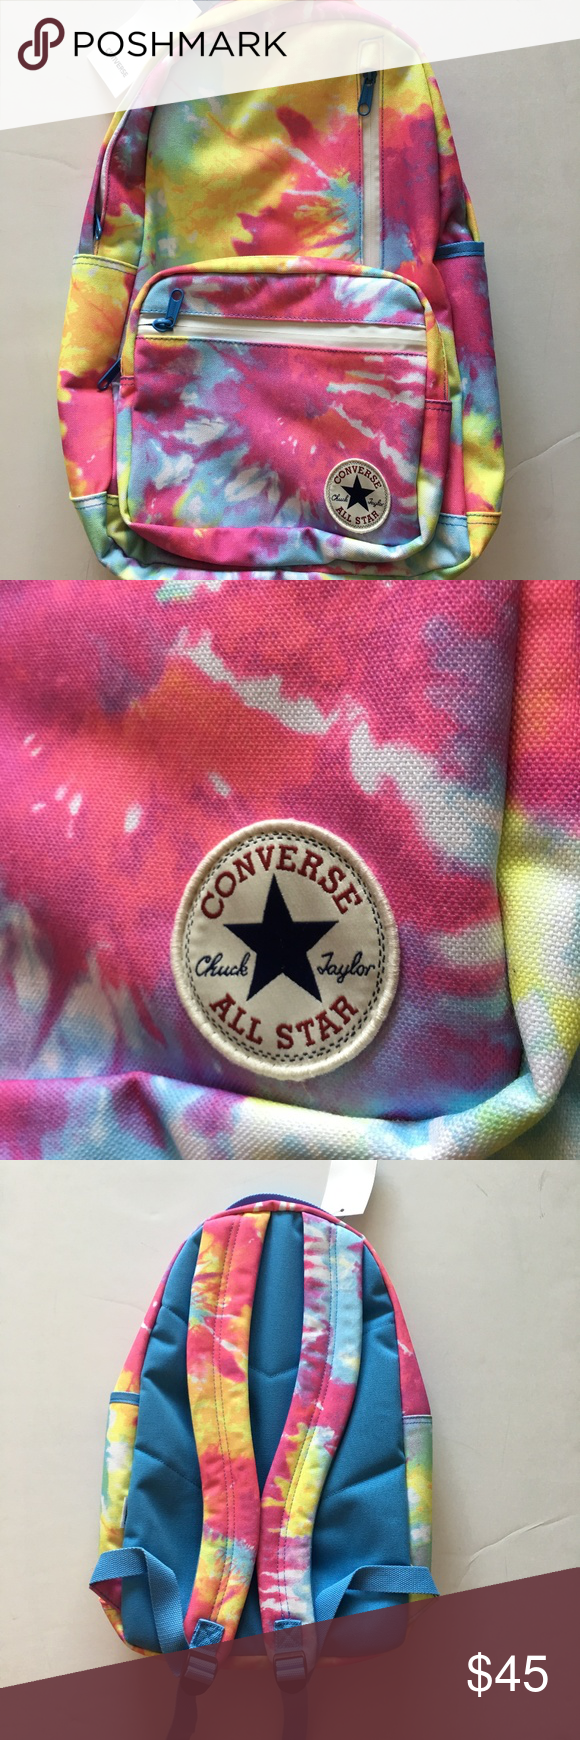 57f05fd0a7db Converse Chuck Taylor Tie-Dye Backpack NWT Converse All Star Chuck Taylor  Tie-Dye backpack is NWT. Item has 4 zipper pockets. Stylish backpack for  Back 2 ...